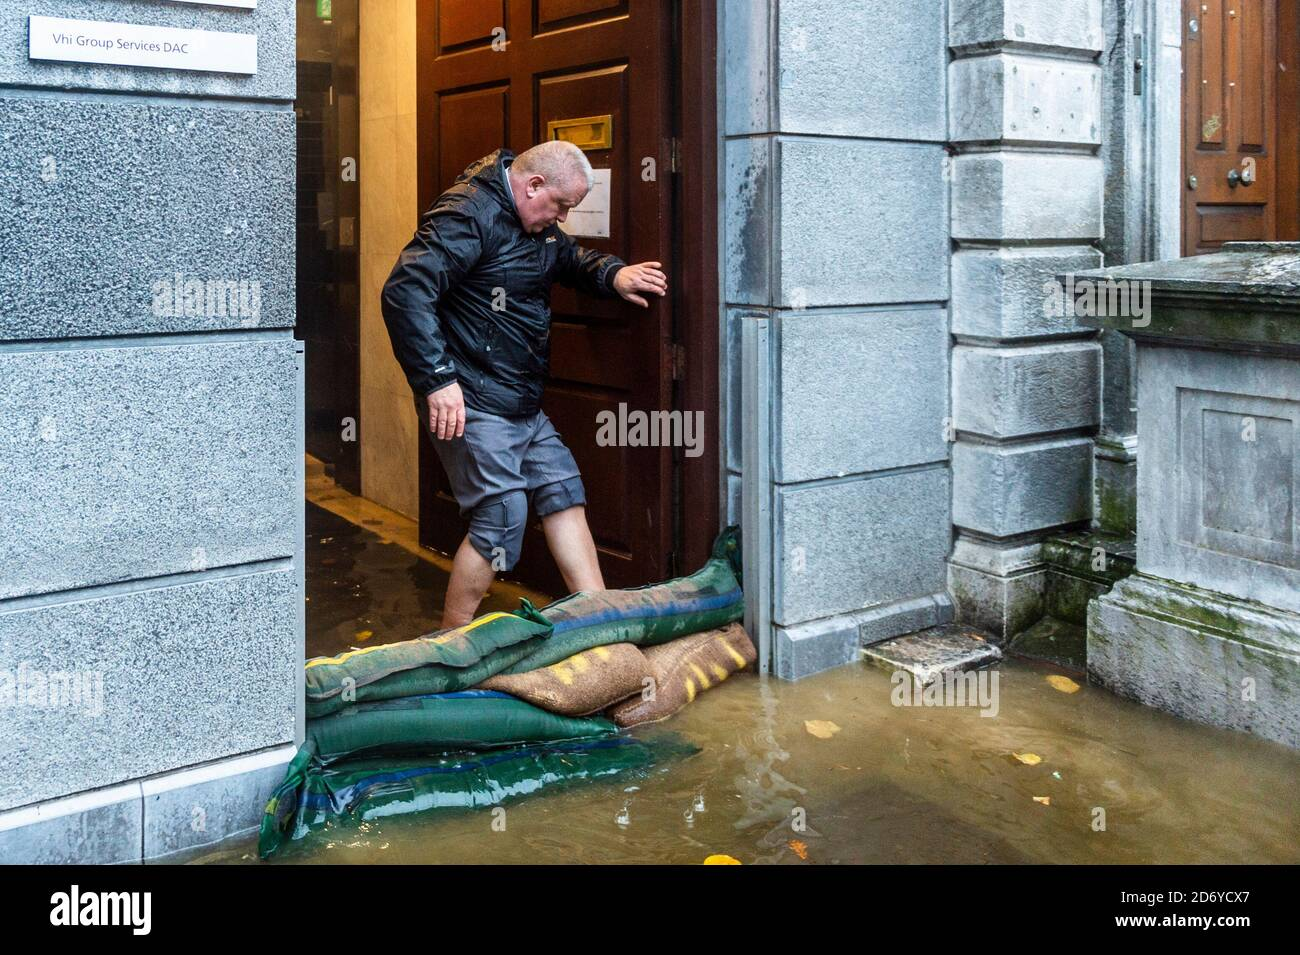 cork-ireland-20th-oct-2020-cork-city-flooded-this-morning-with-south-mall-and-the-low-lying-quays-bearing-the-brunt-of-the-flood-water-credit-ag-newsalamy-live-news-2D6YCX7.jpg